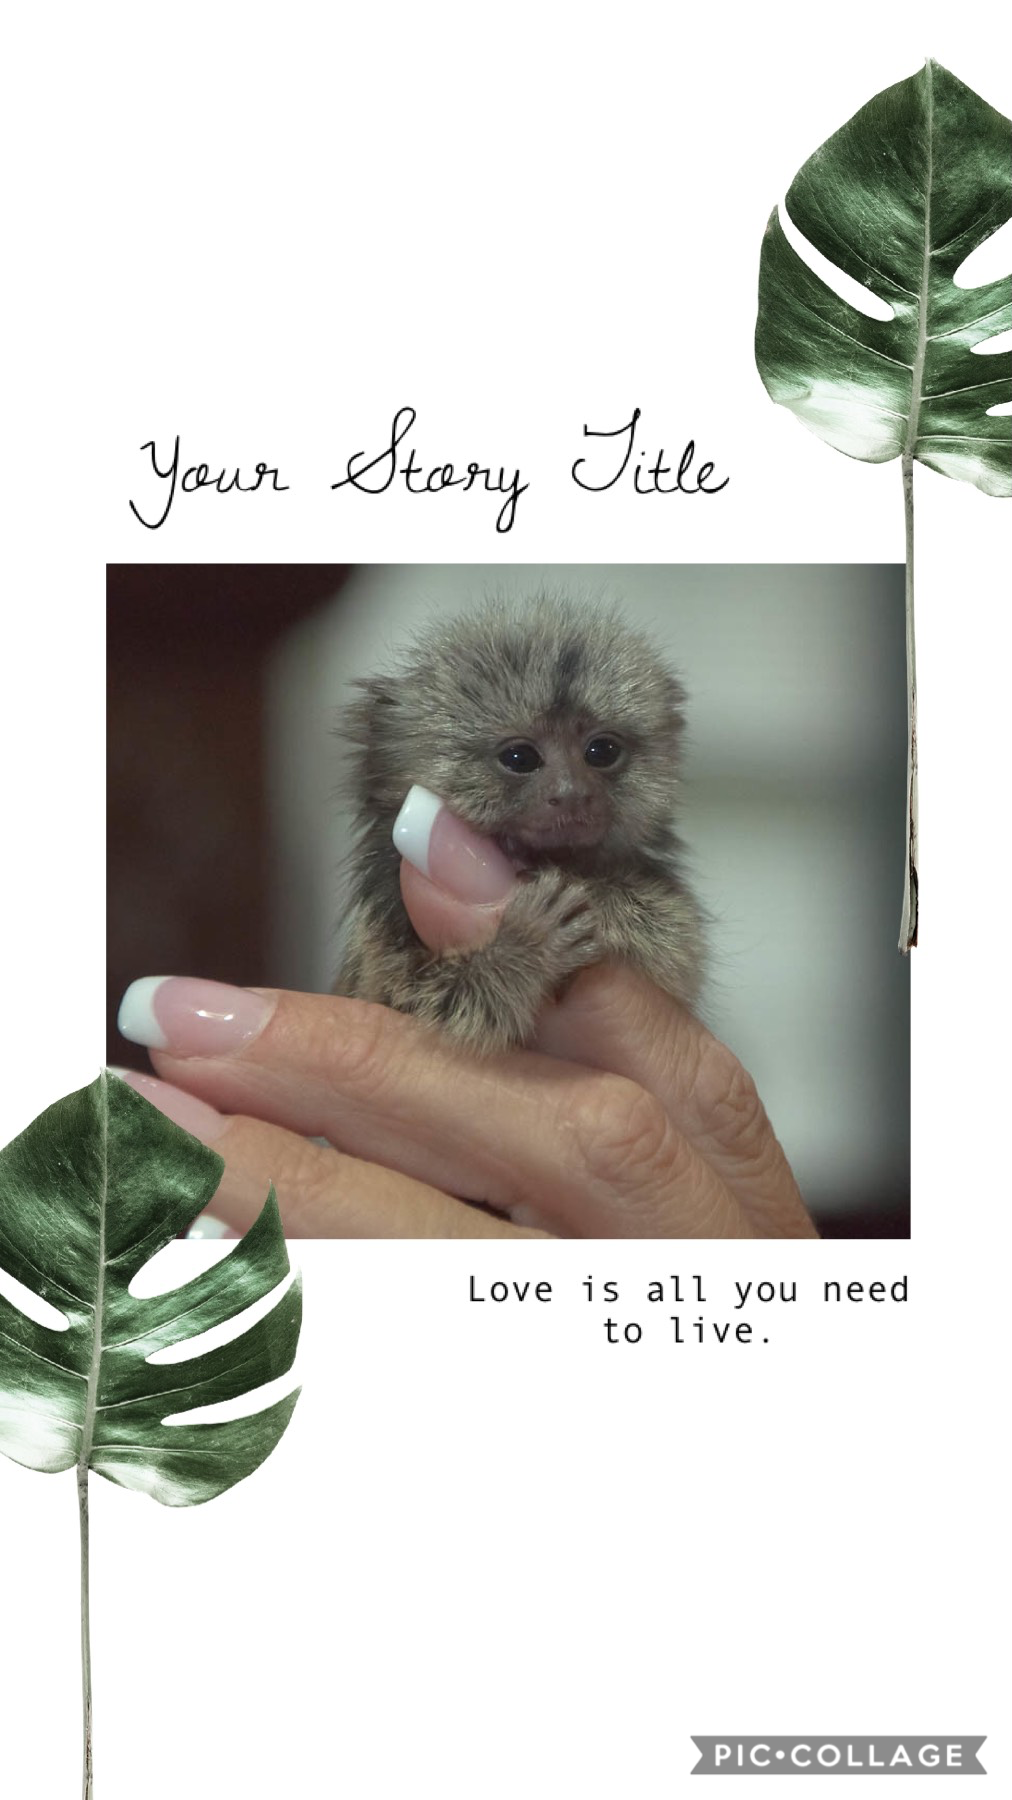 This is a baby Marmoset